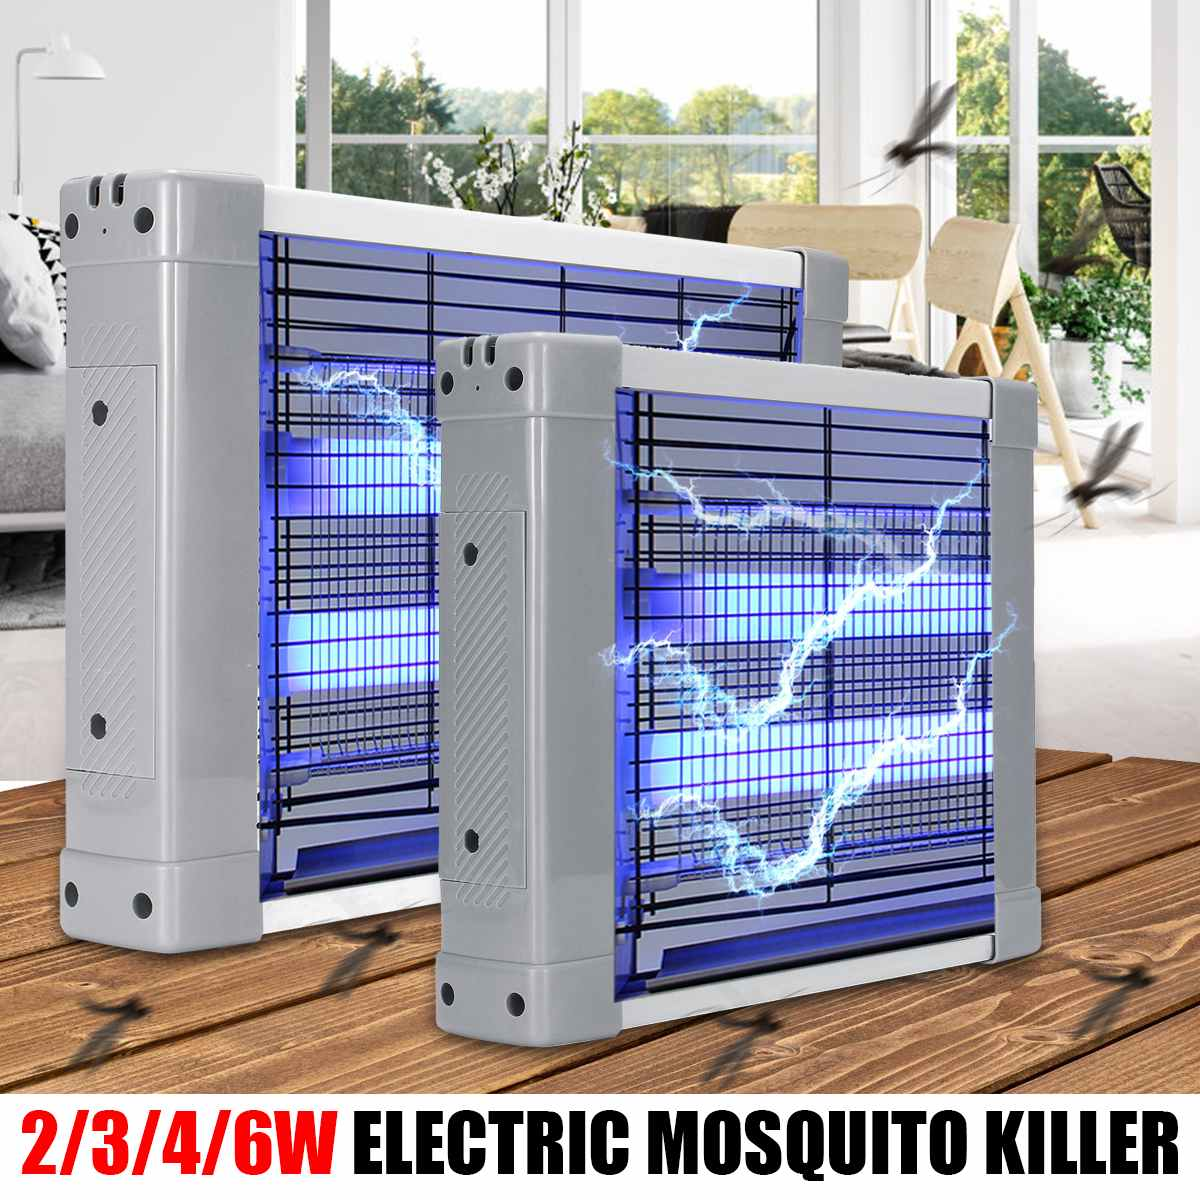 2/3/4/6W Mosquito Killer Lamps LED Night Light Electric Socket Mosquito Fly Killer Zapper Bug Insect Physical Trap AntiMosquito2/3/4/6W Mosquito Killer Lamps LED Night Light Electric Socket Mosquito Fly Killer Zapper Bug Insect Physical Trap AntiMosquito